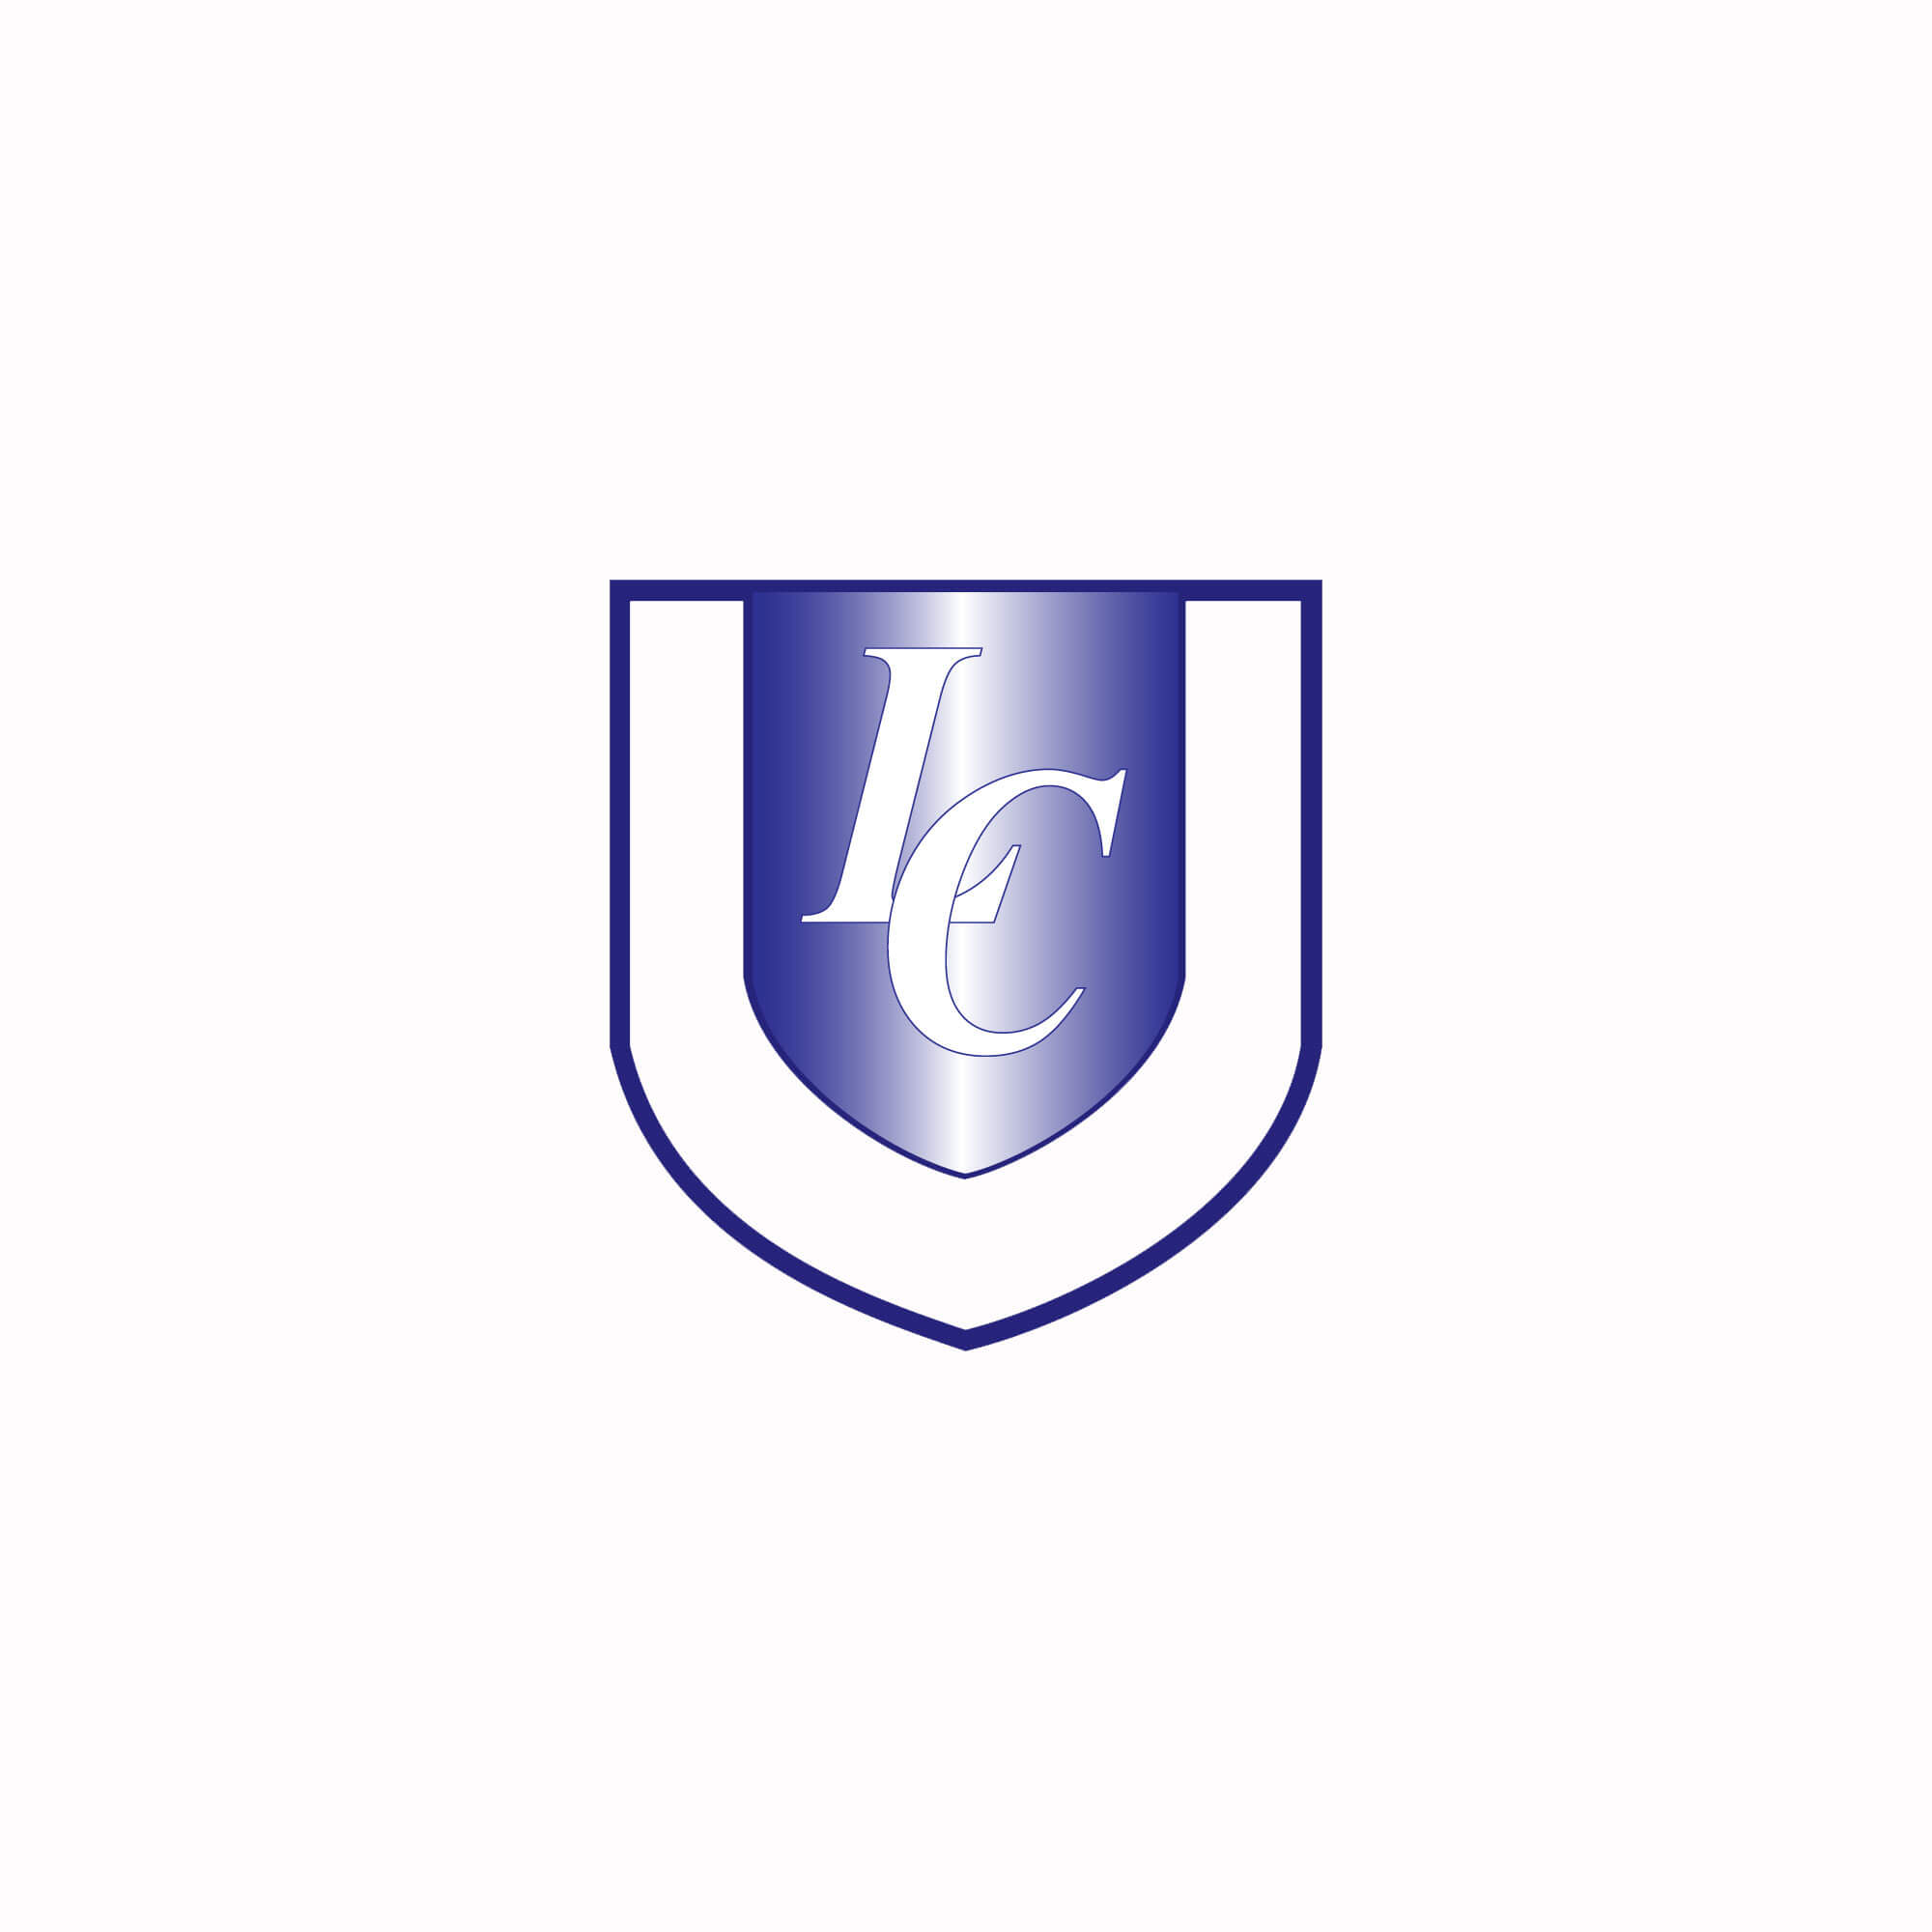 a blue shield with LC in the middle